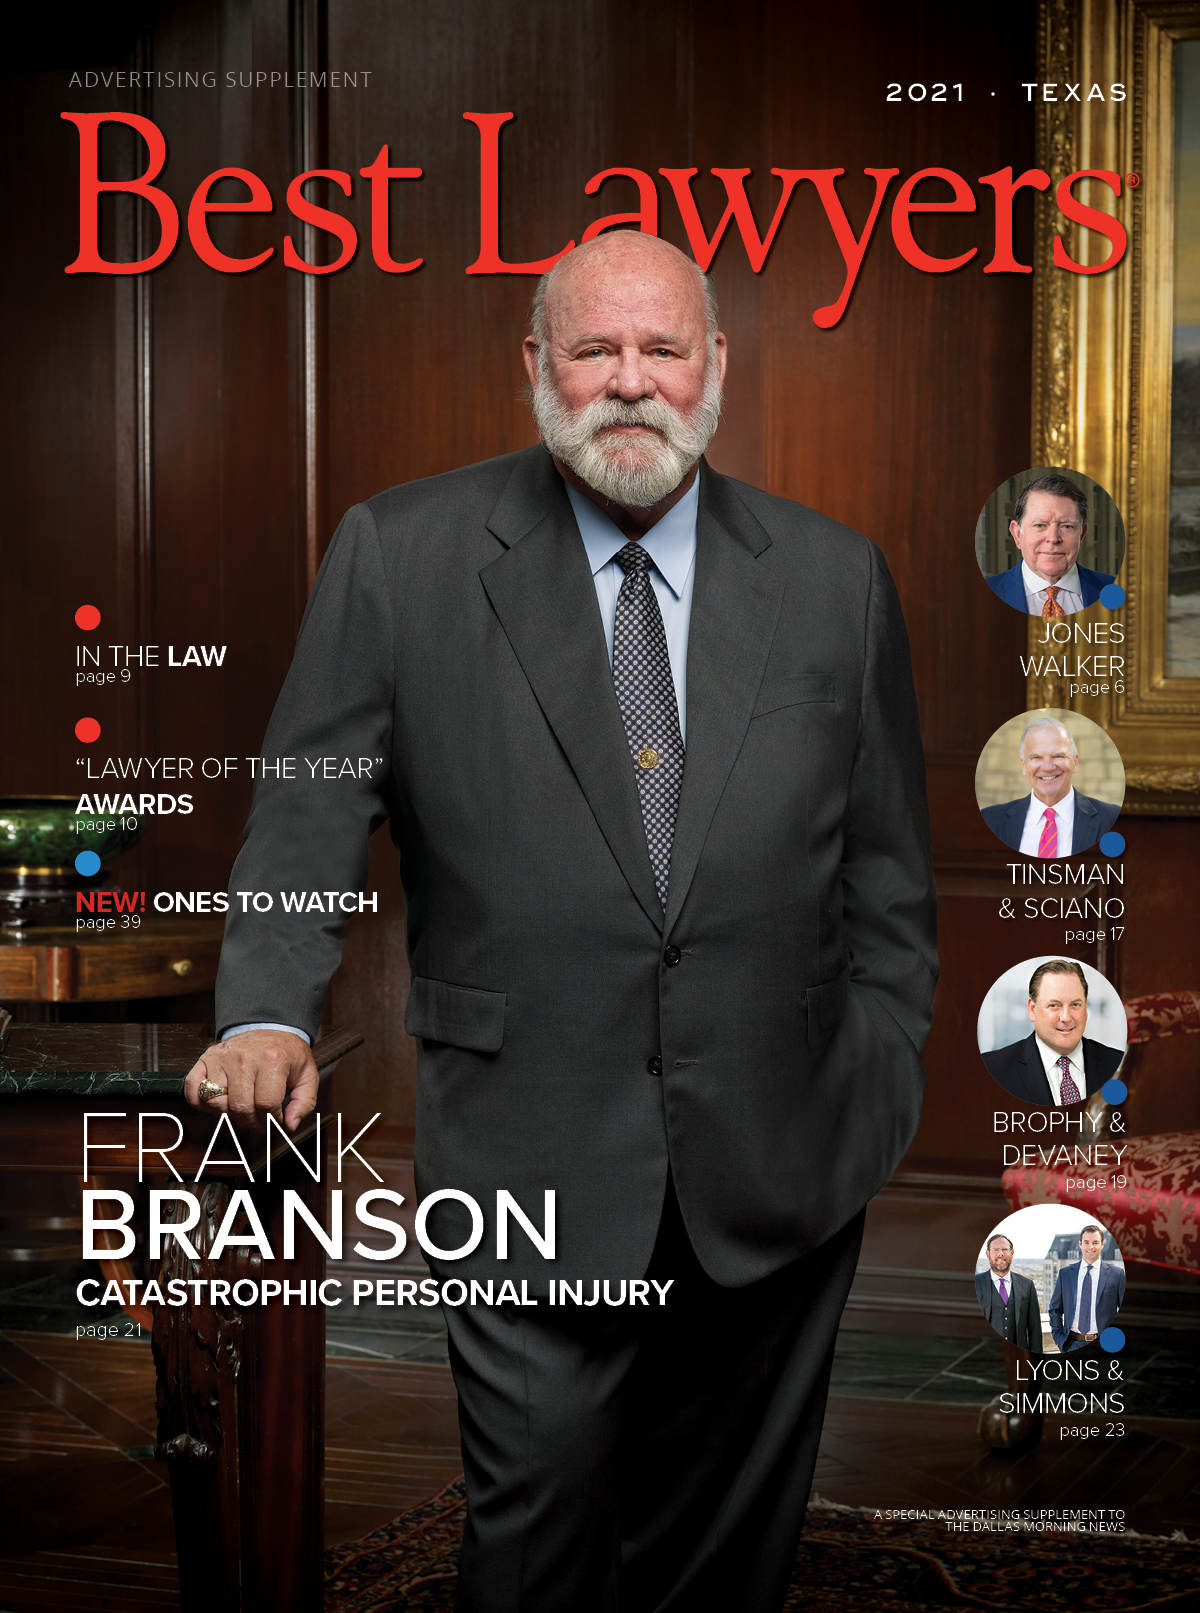 Cover for our Texas publication